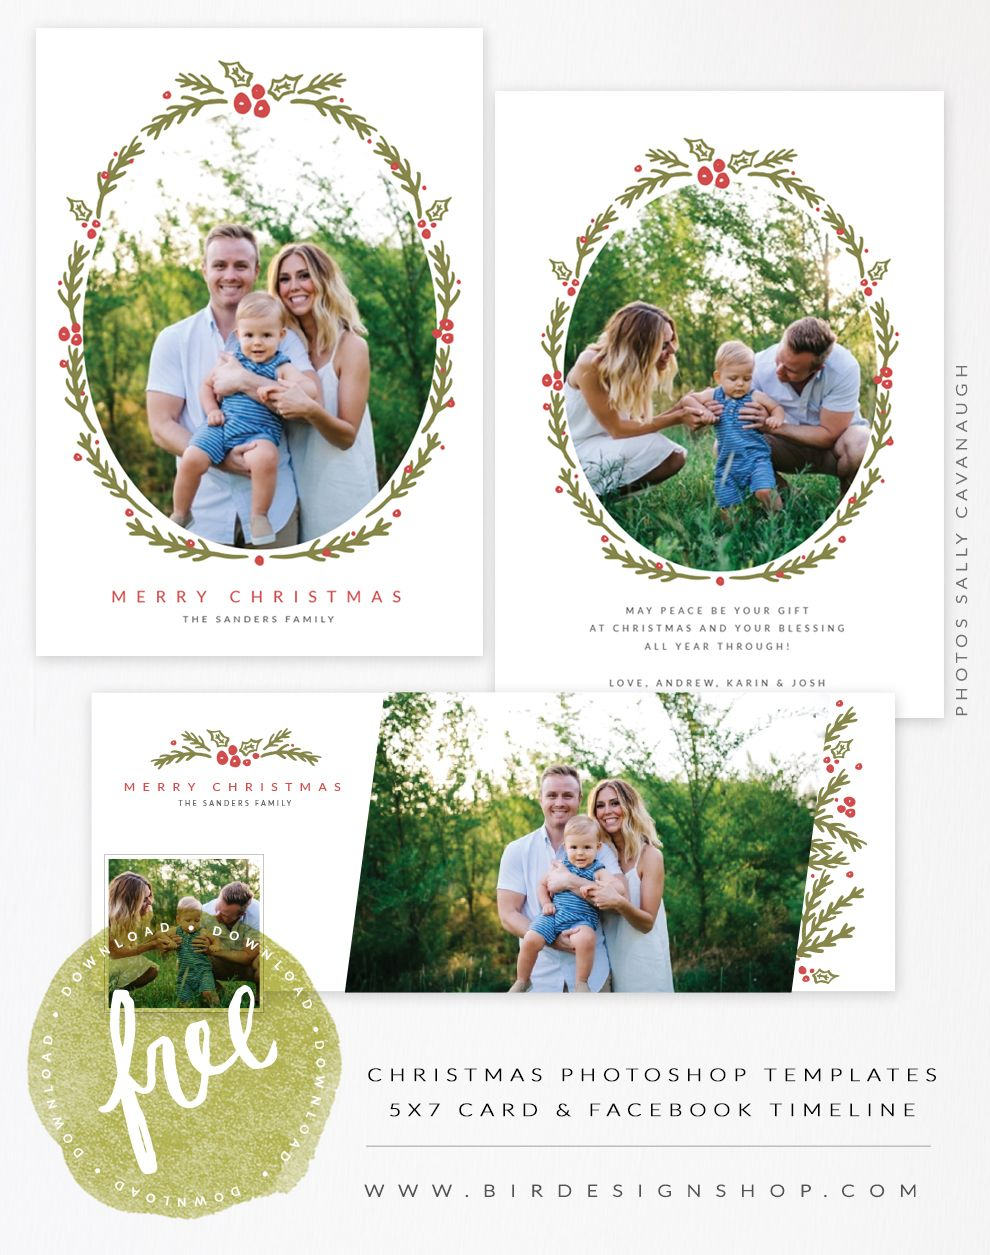 August Freebie Christmas Card Fb Timeline Templates Photoshop Christmas Card Template Christmas Card Templates Free Christmas Photo Card Template